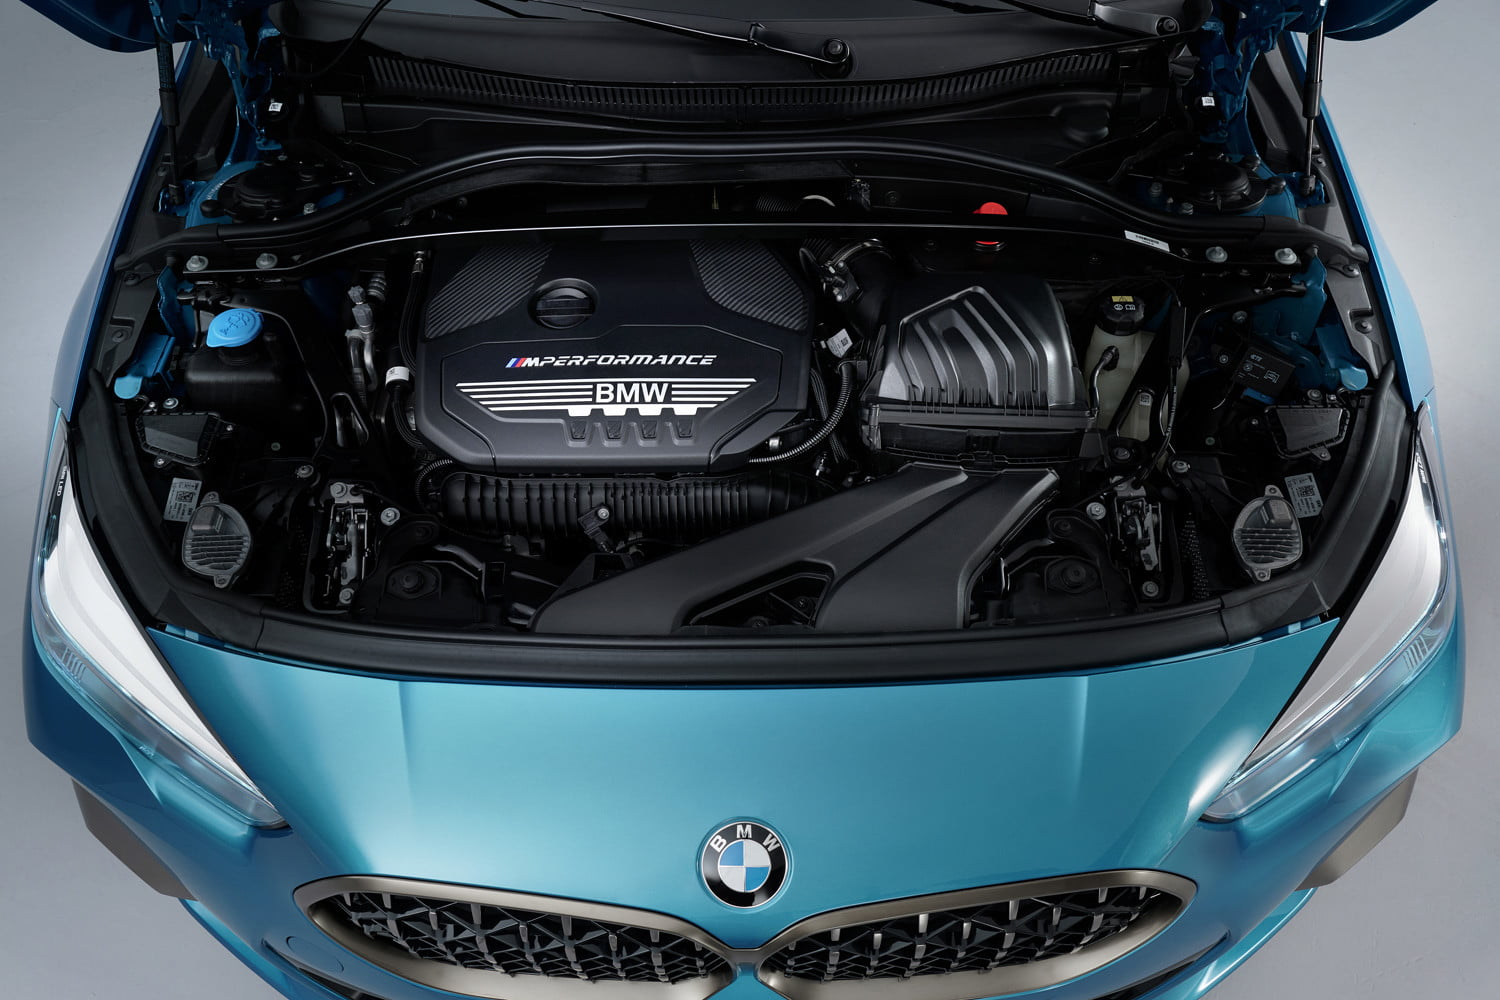 2020 bmw 228i m235i gran coupe unveiled as entry level sedans 2 series gc off 20